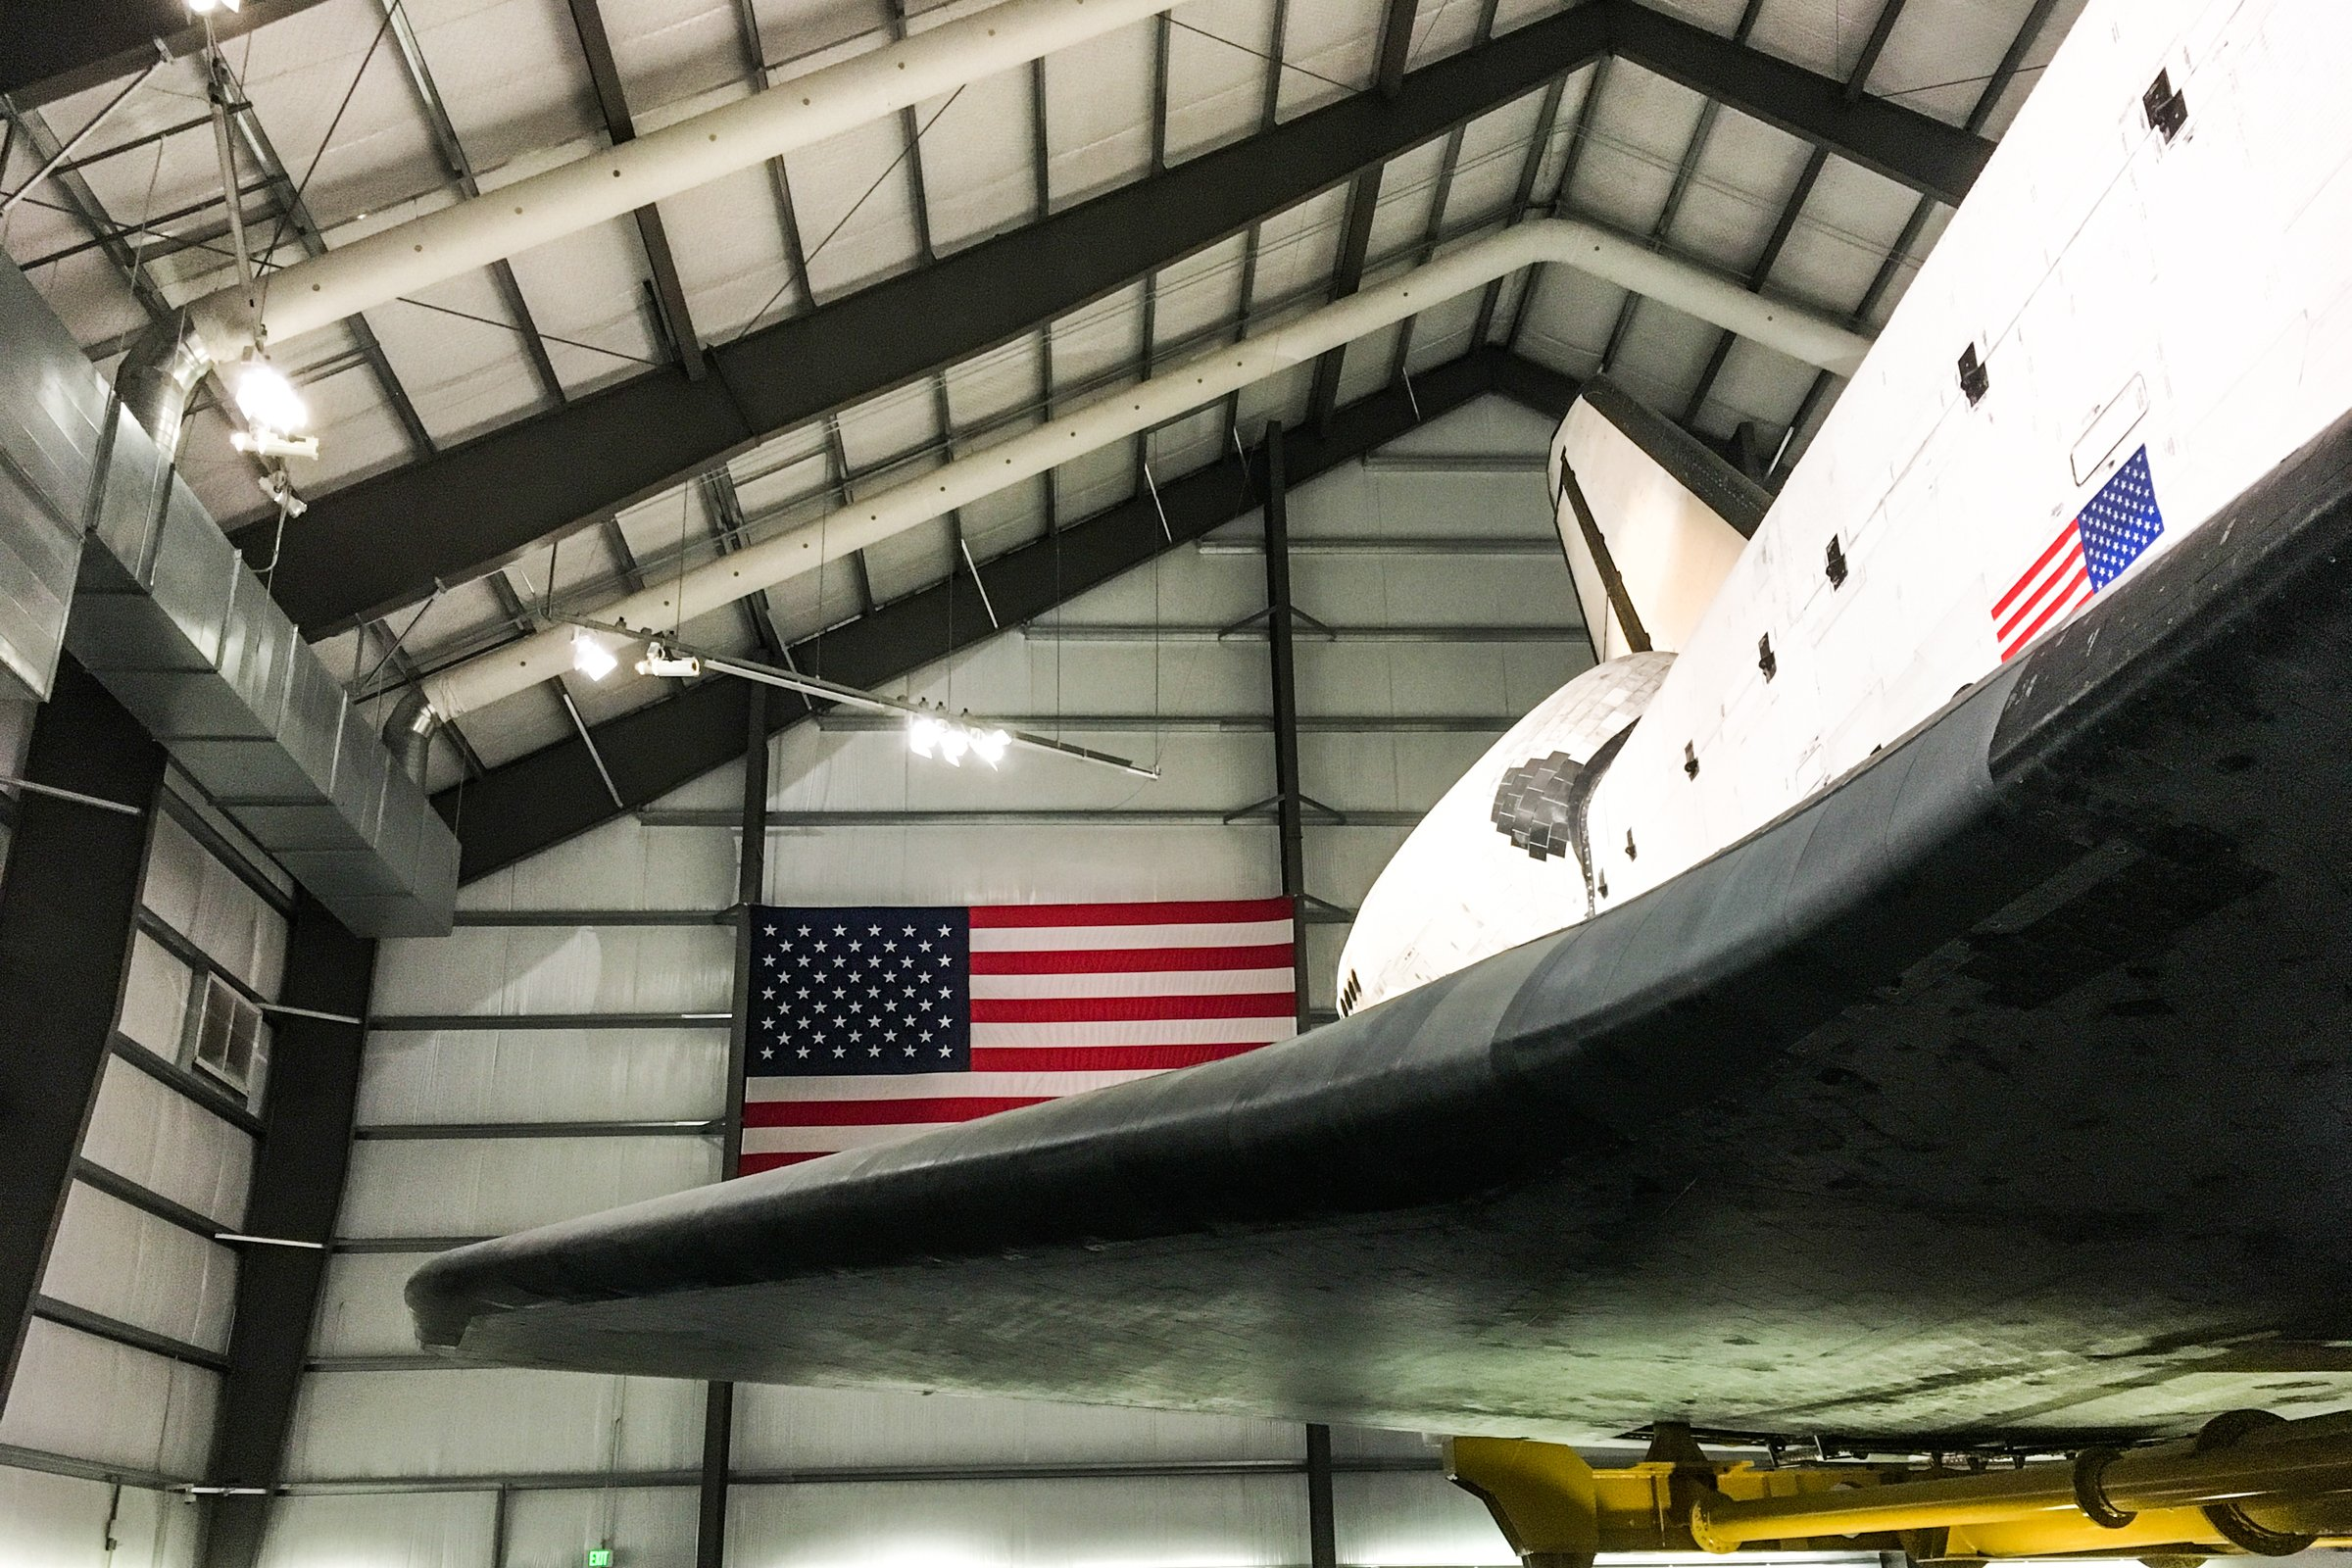 Space Shuttle in Hanger with American Flag